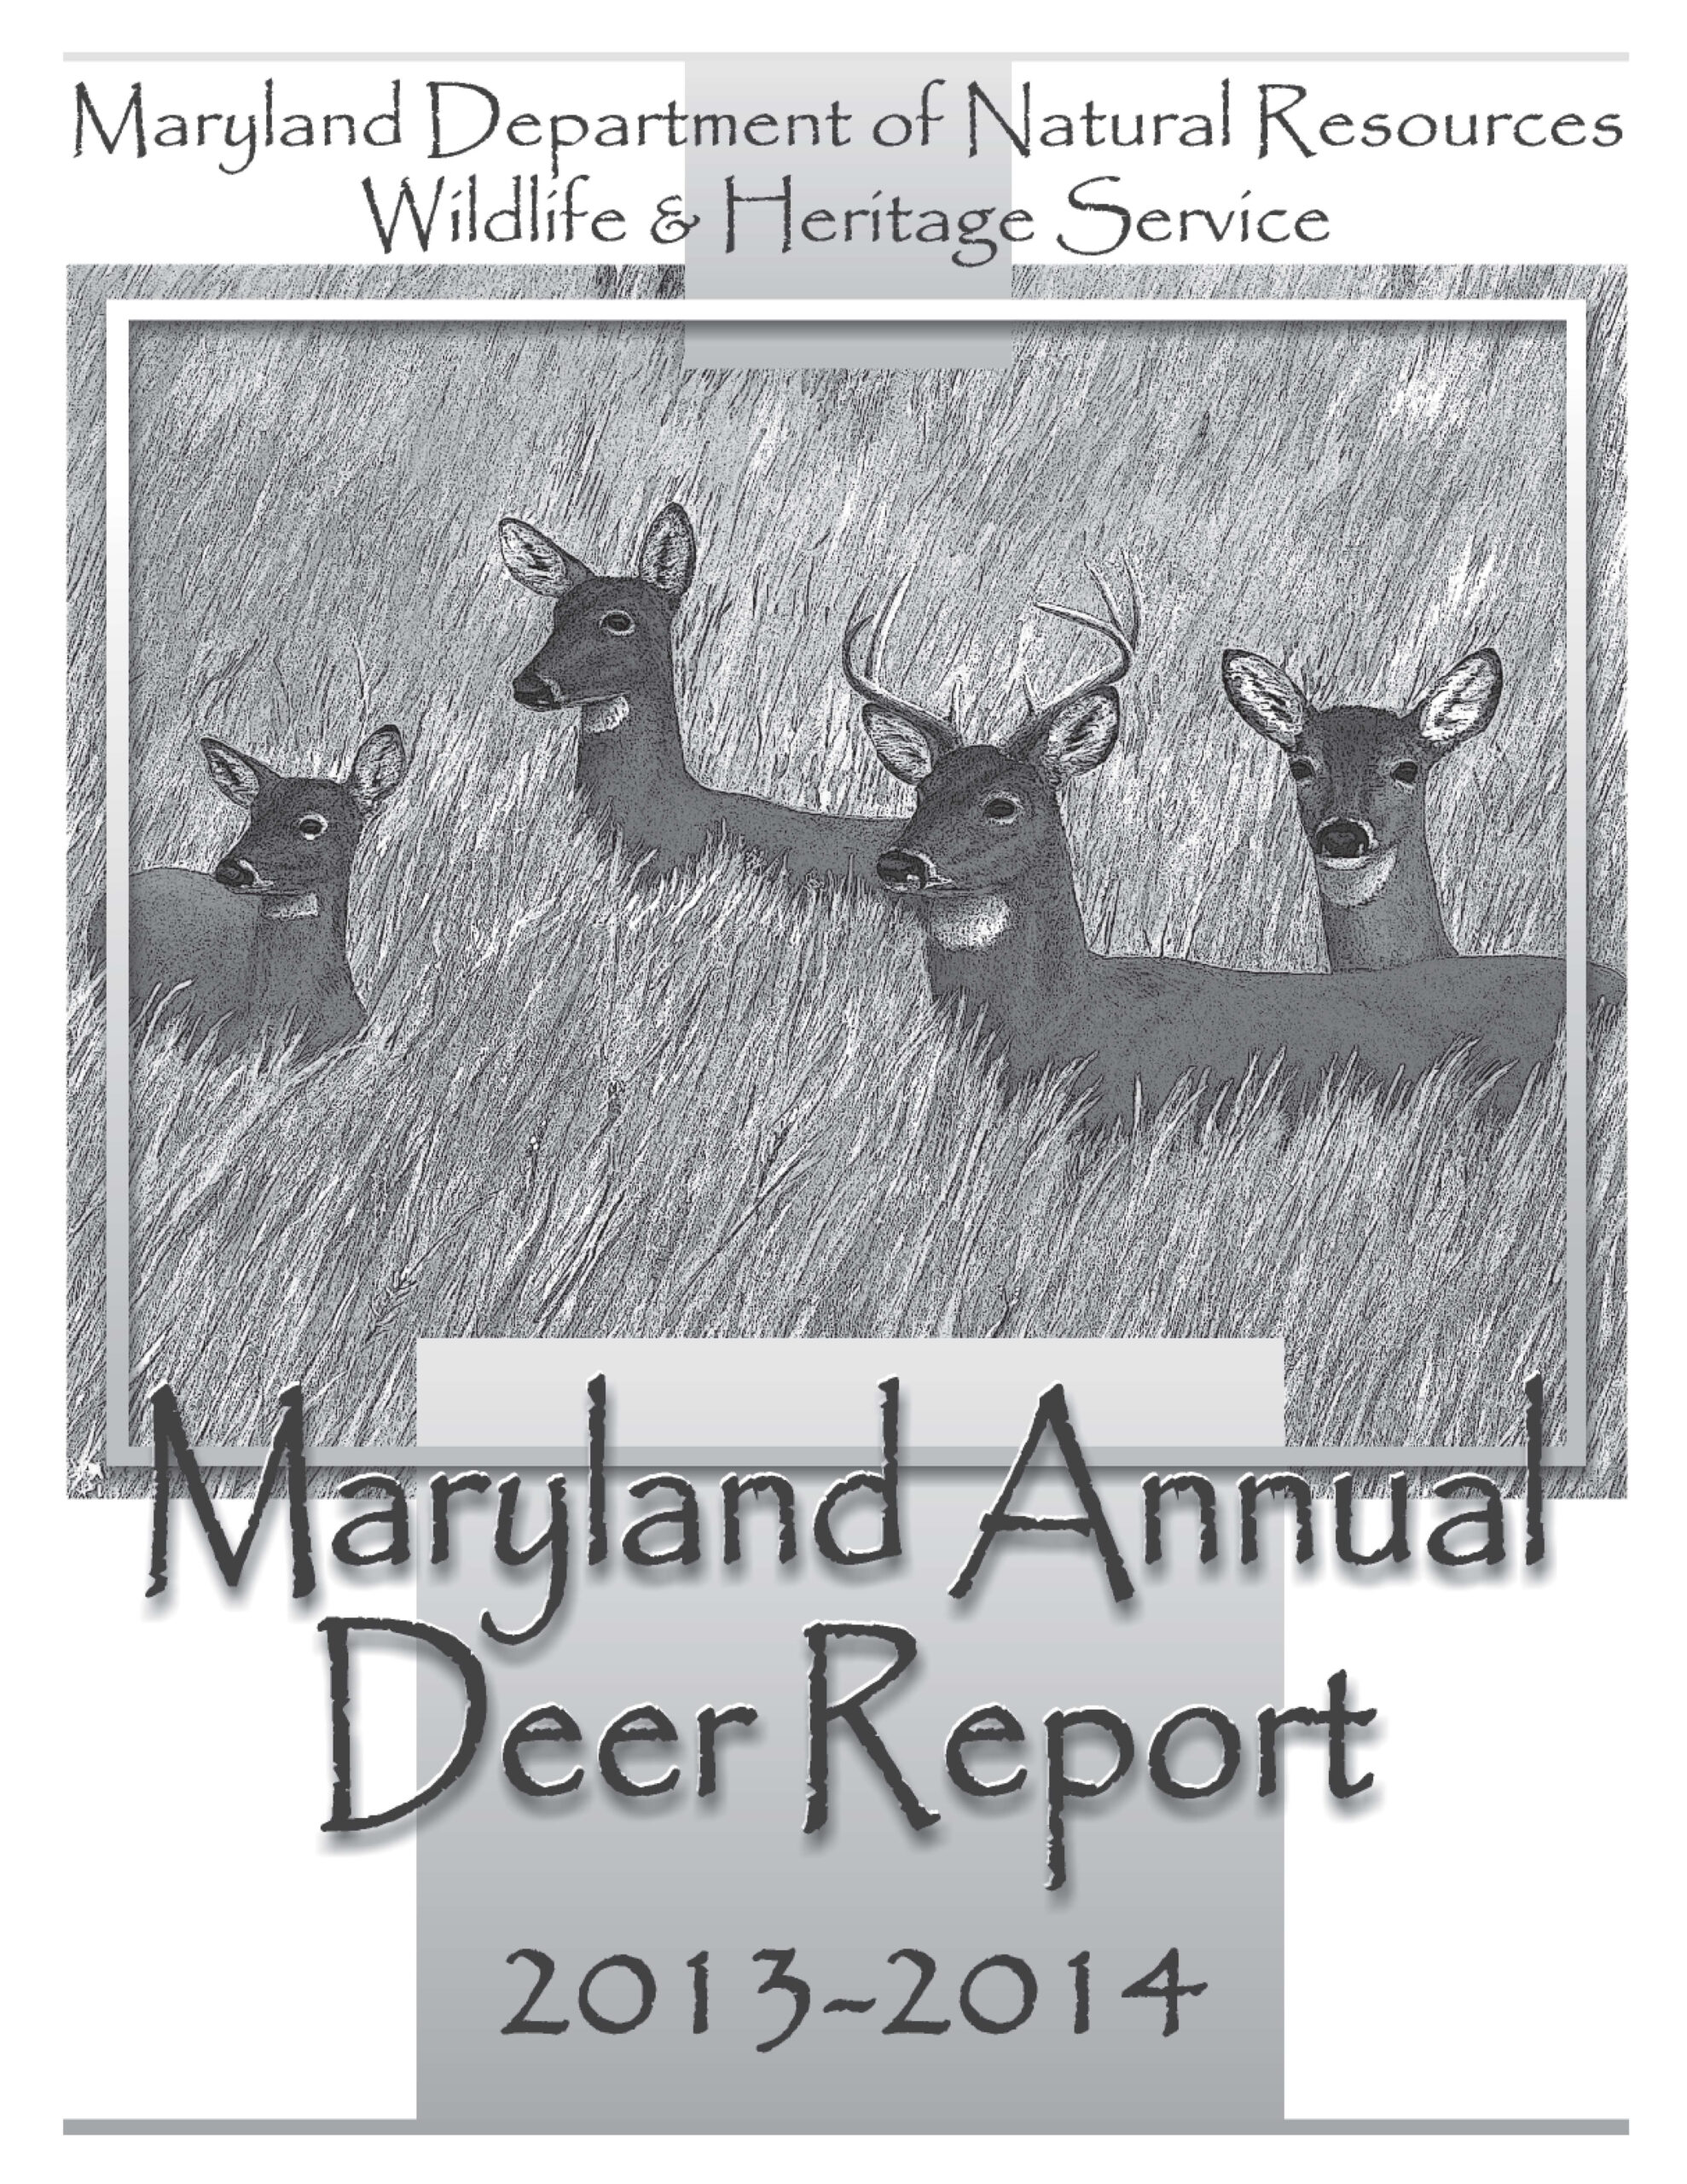 Md_Annual_Deer_Report13-14_Page_01 - We'Re All About